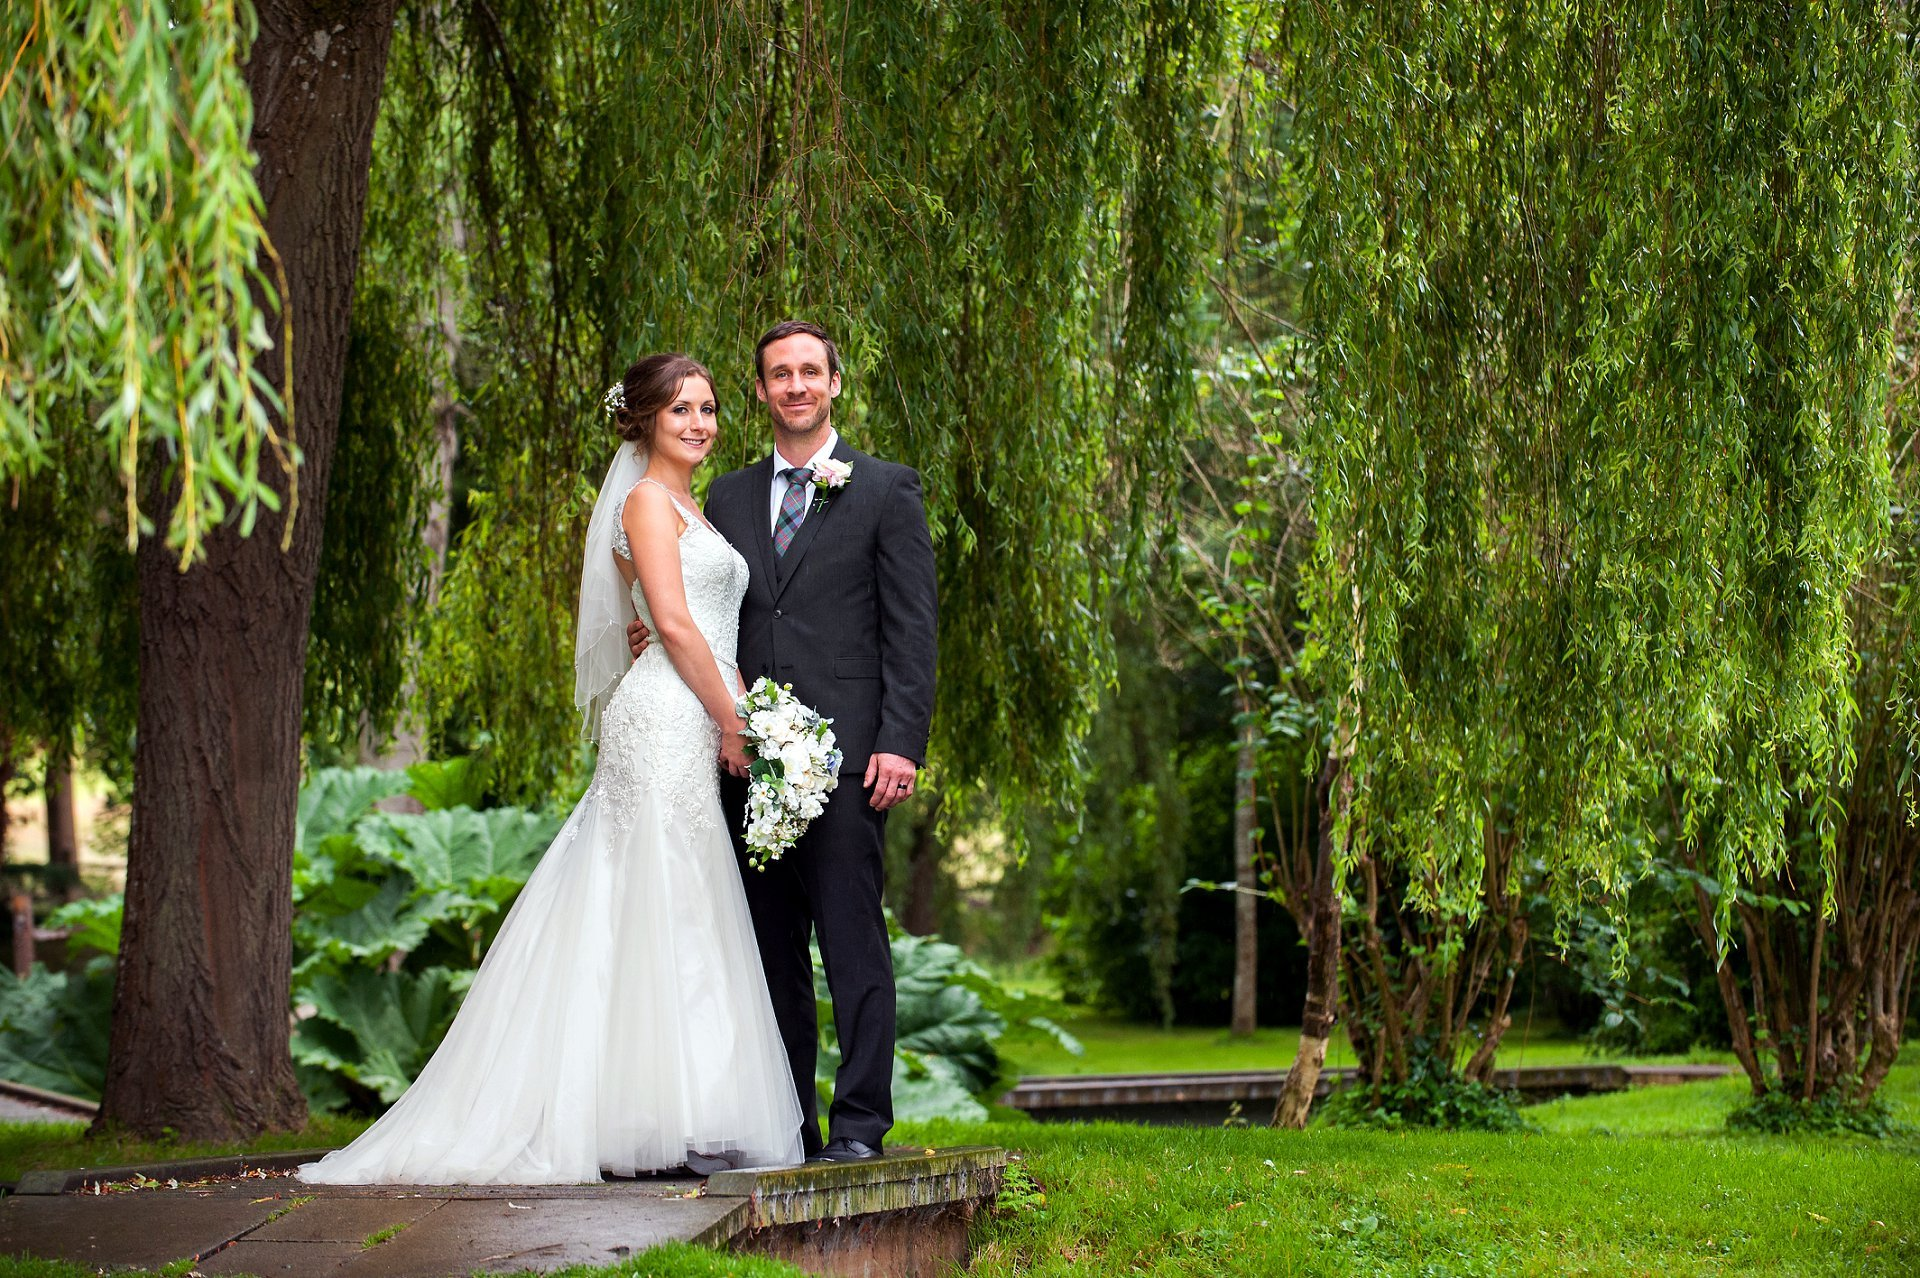 Wedding photography Leeds Castle. Leeds Castle wedding photography by Emma Duggan - here the bride and groom pose beneath a weeping willow in the romantic grounds at Leeds Castle just after their nearby church wedding blessing in St Peter's Ditton